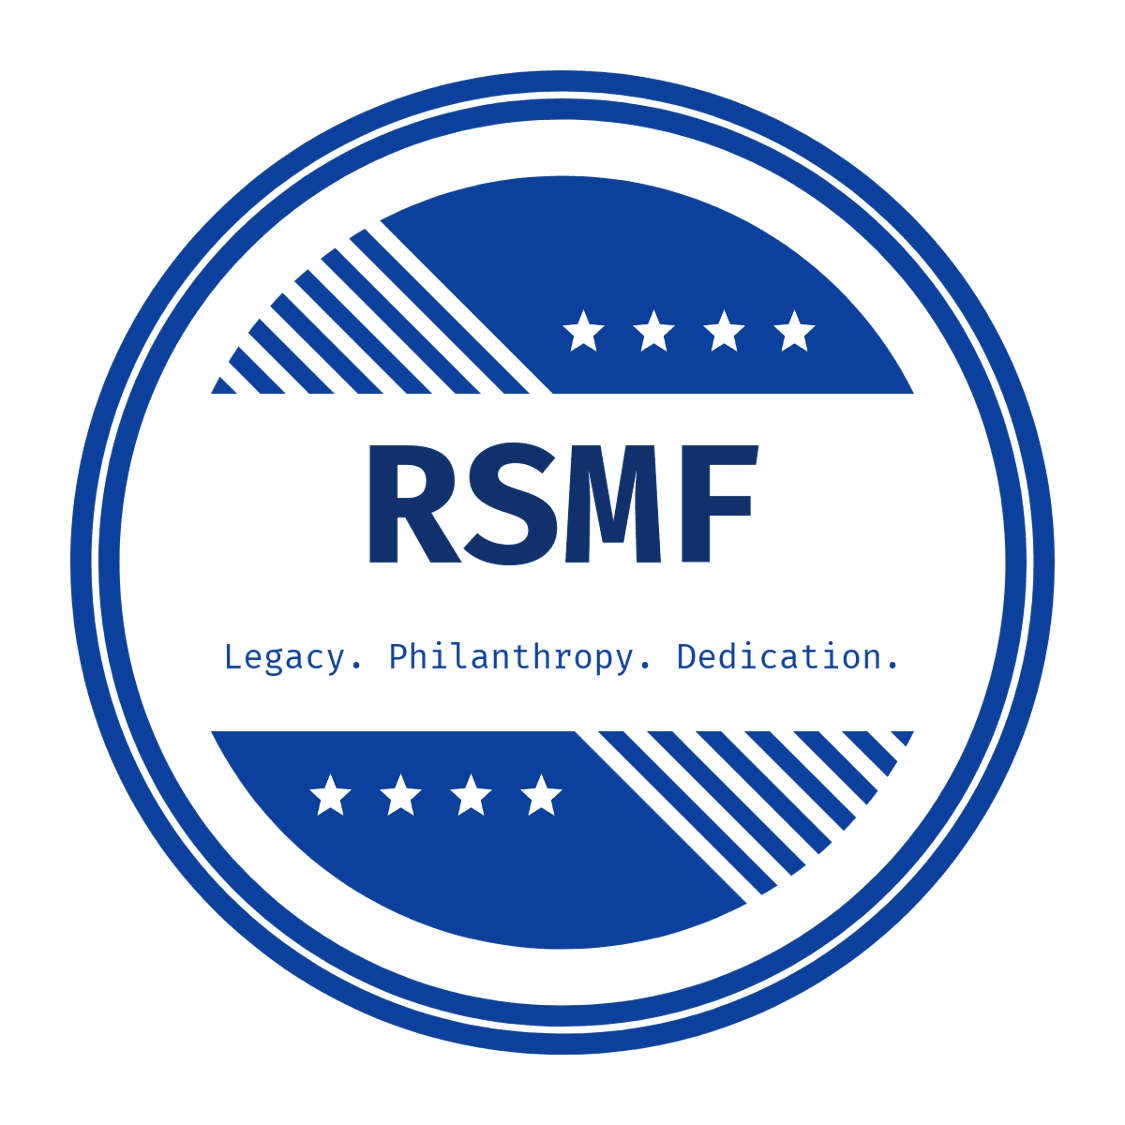 Richard Schoenstadt Memorial Foundation (RSMF)